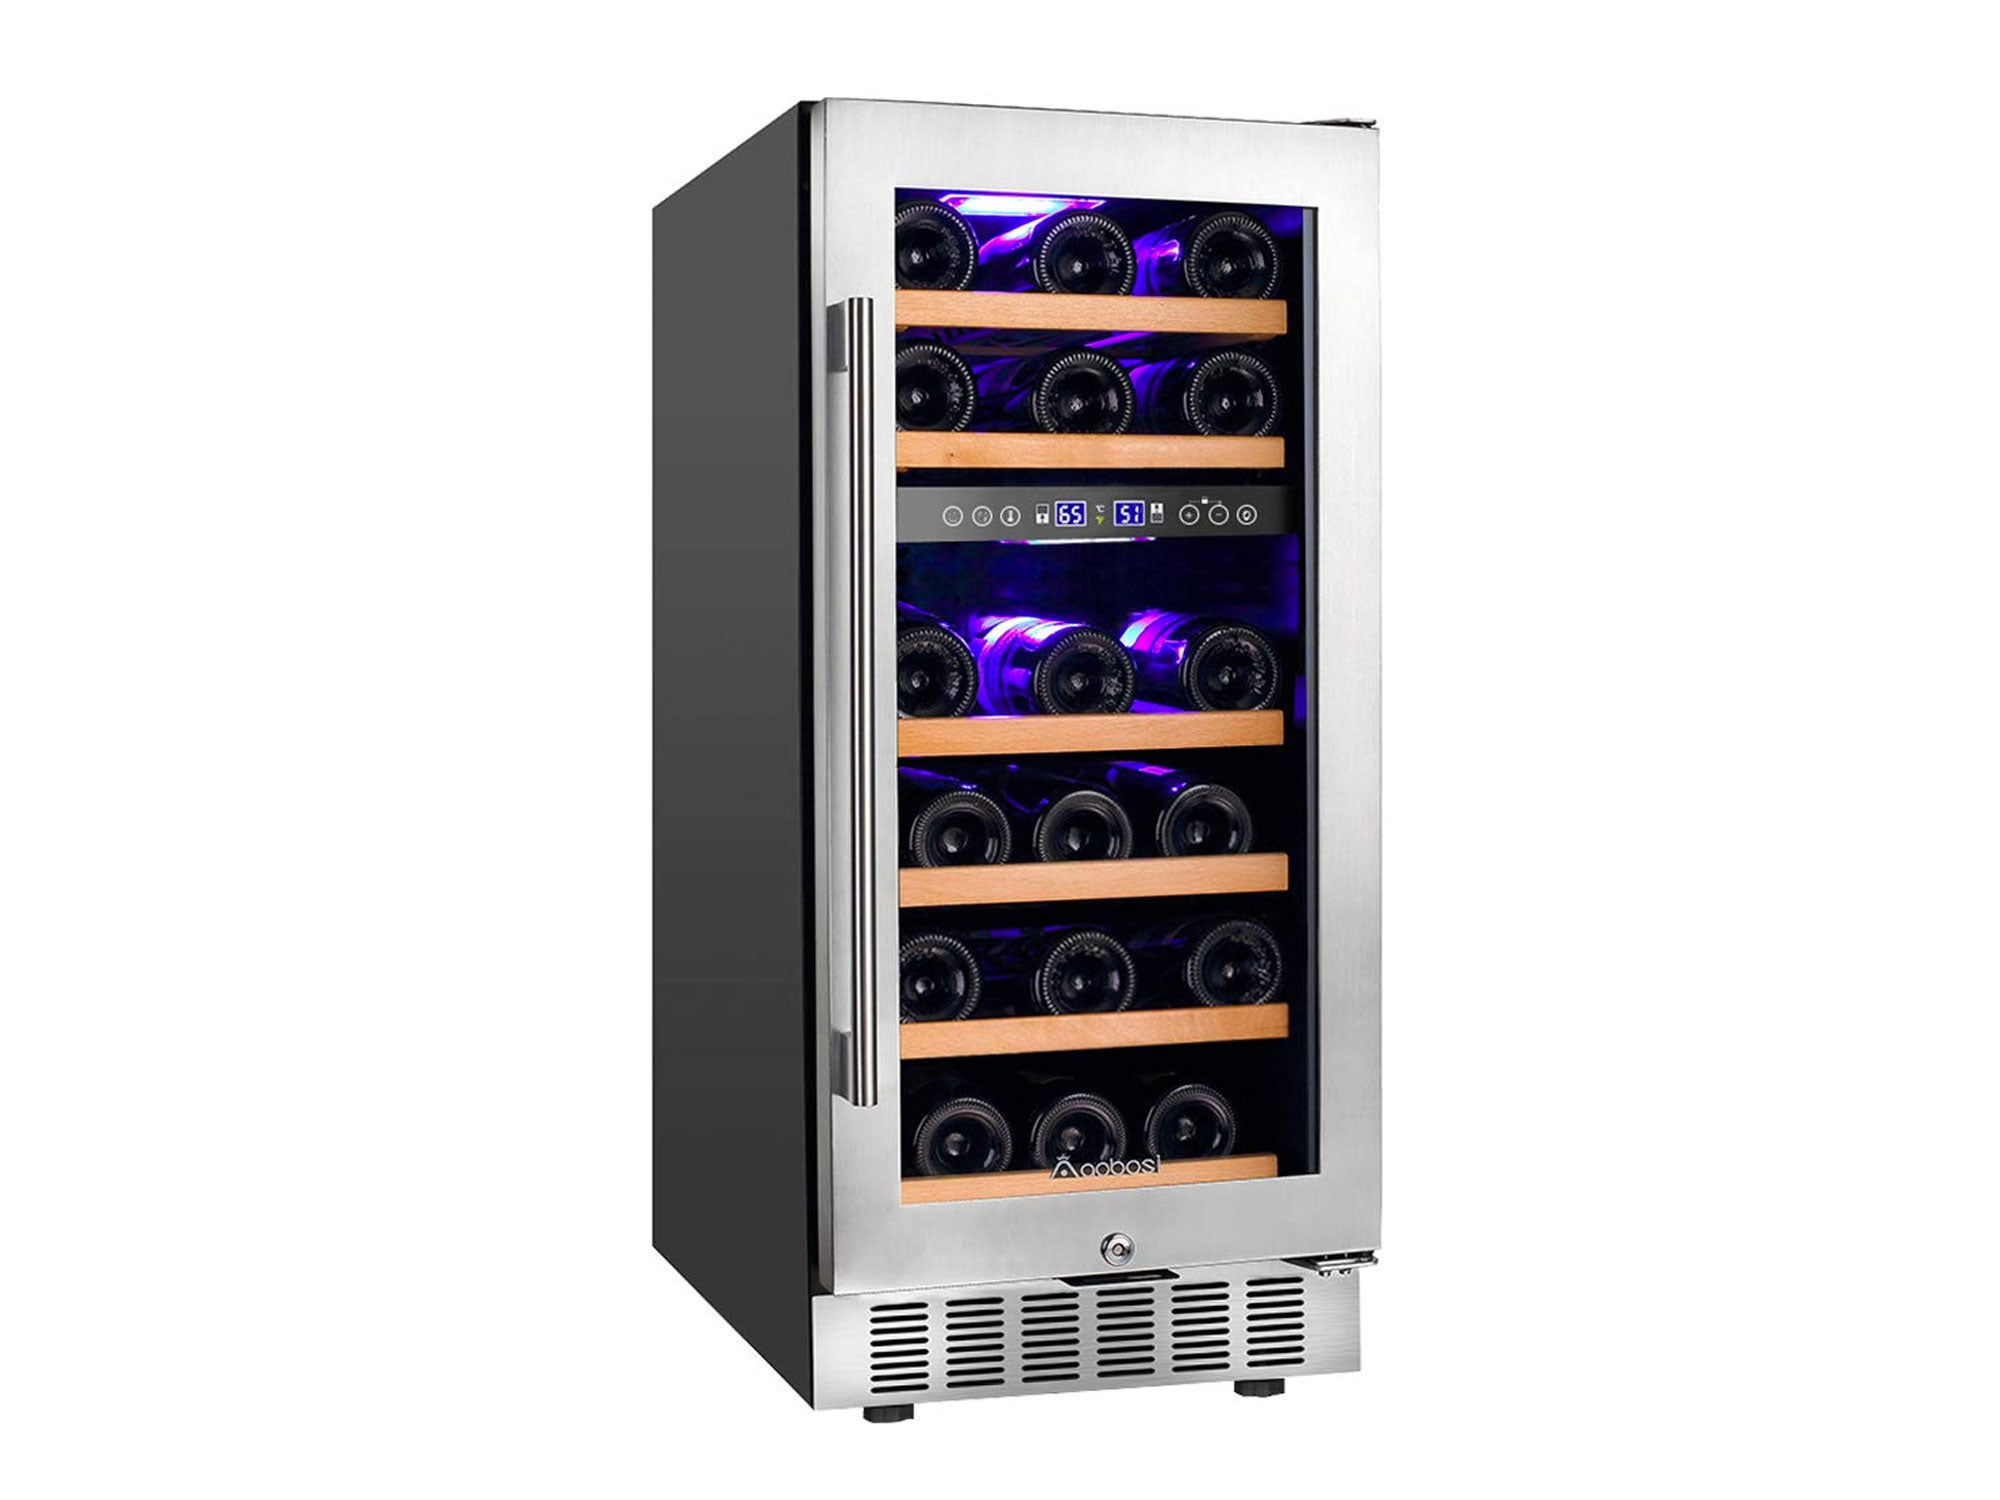 Aobosi 15 Inch Wine Cooler, 28 Bottle Dual Zone Wine Refrigerator with Stainless Steel Tempered Glass Door